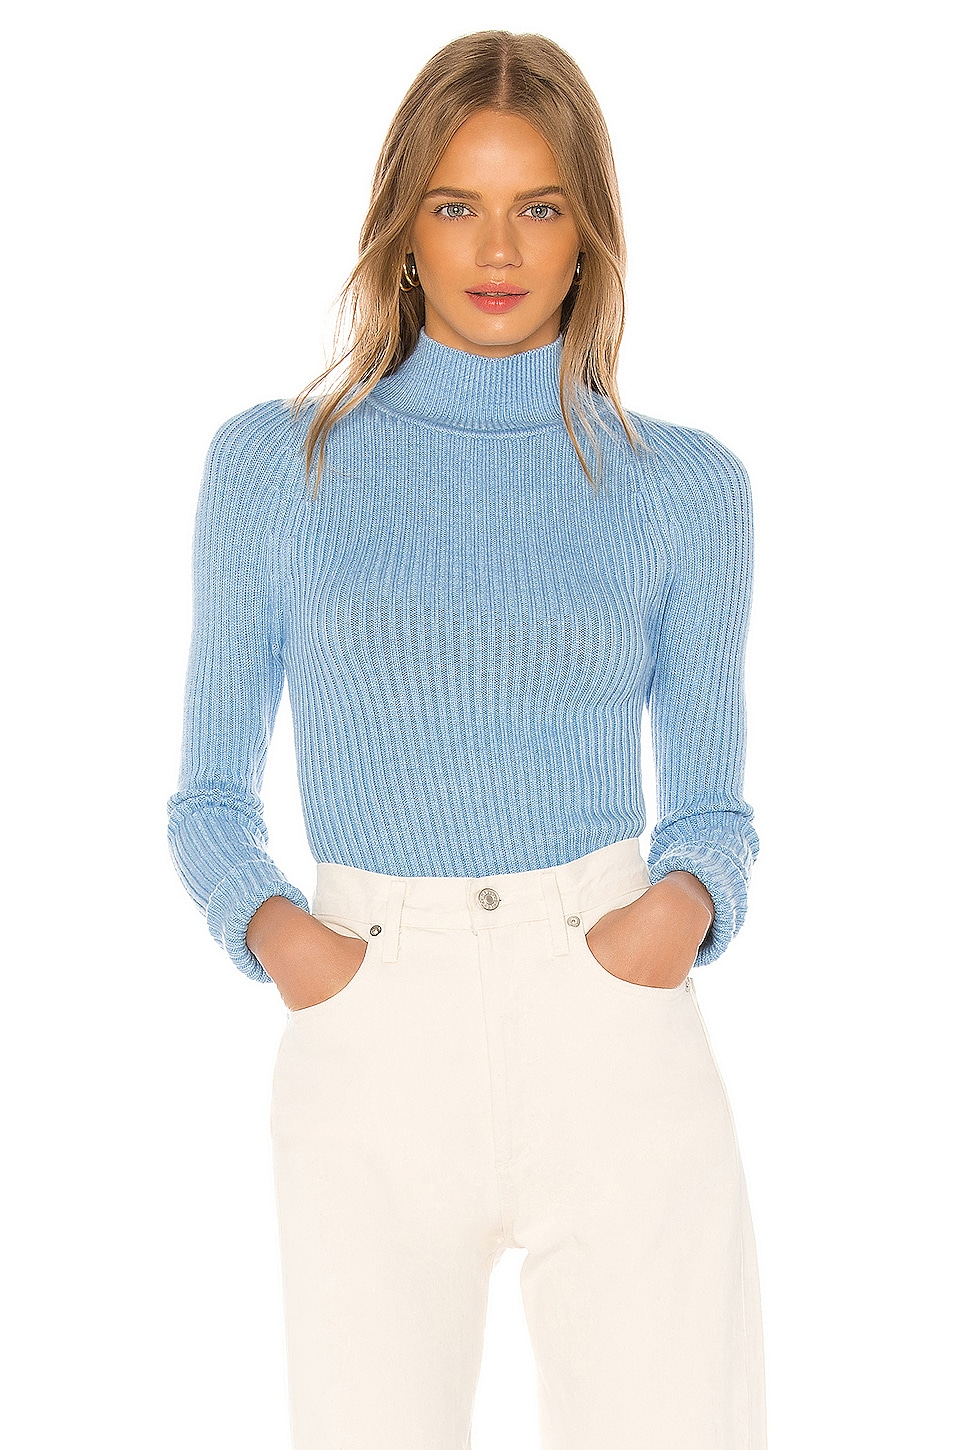 Song of Style Caiden Sweater in Baby Blue